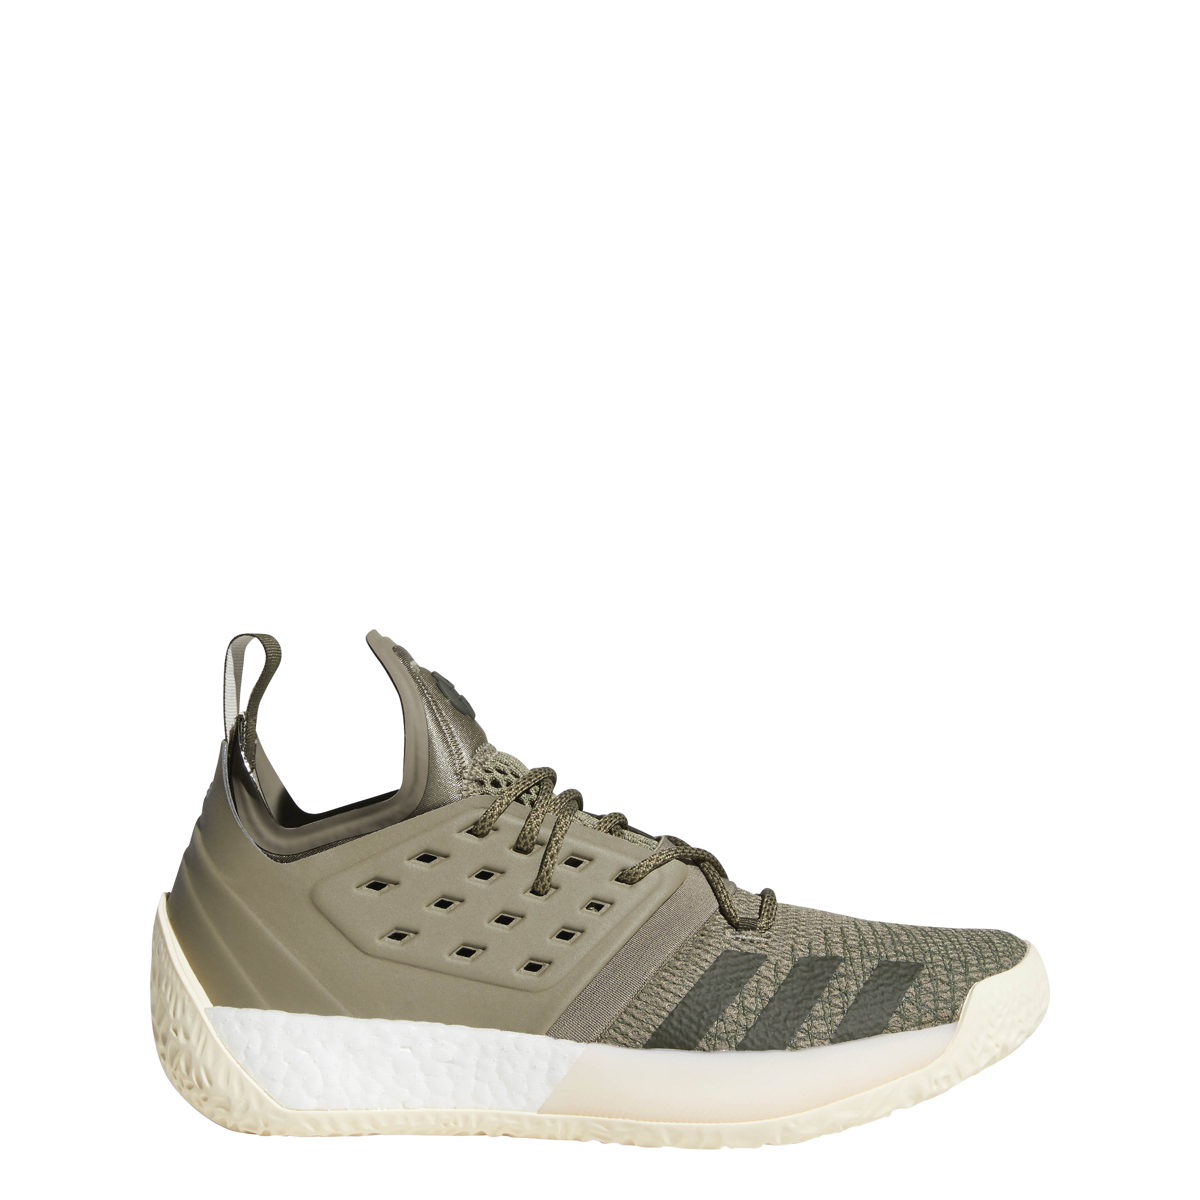 huge selection of 59015 88d33 Details about Men s Adidas Harden Vol 2 Basketball Shoe Trace Cargo Ecru  Tint Night Cargo